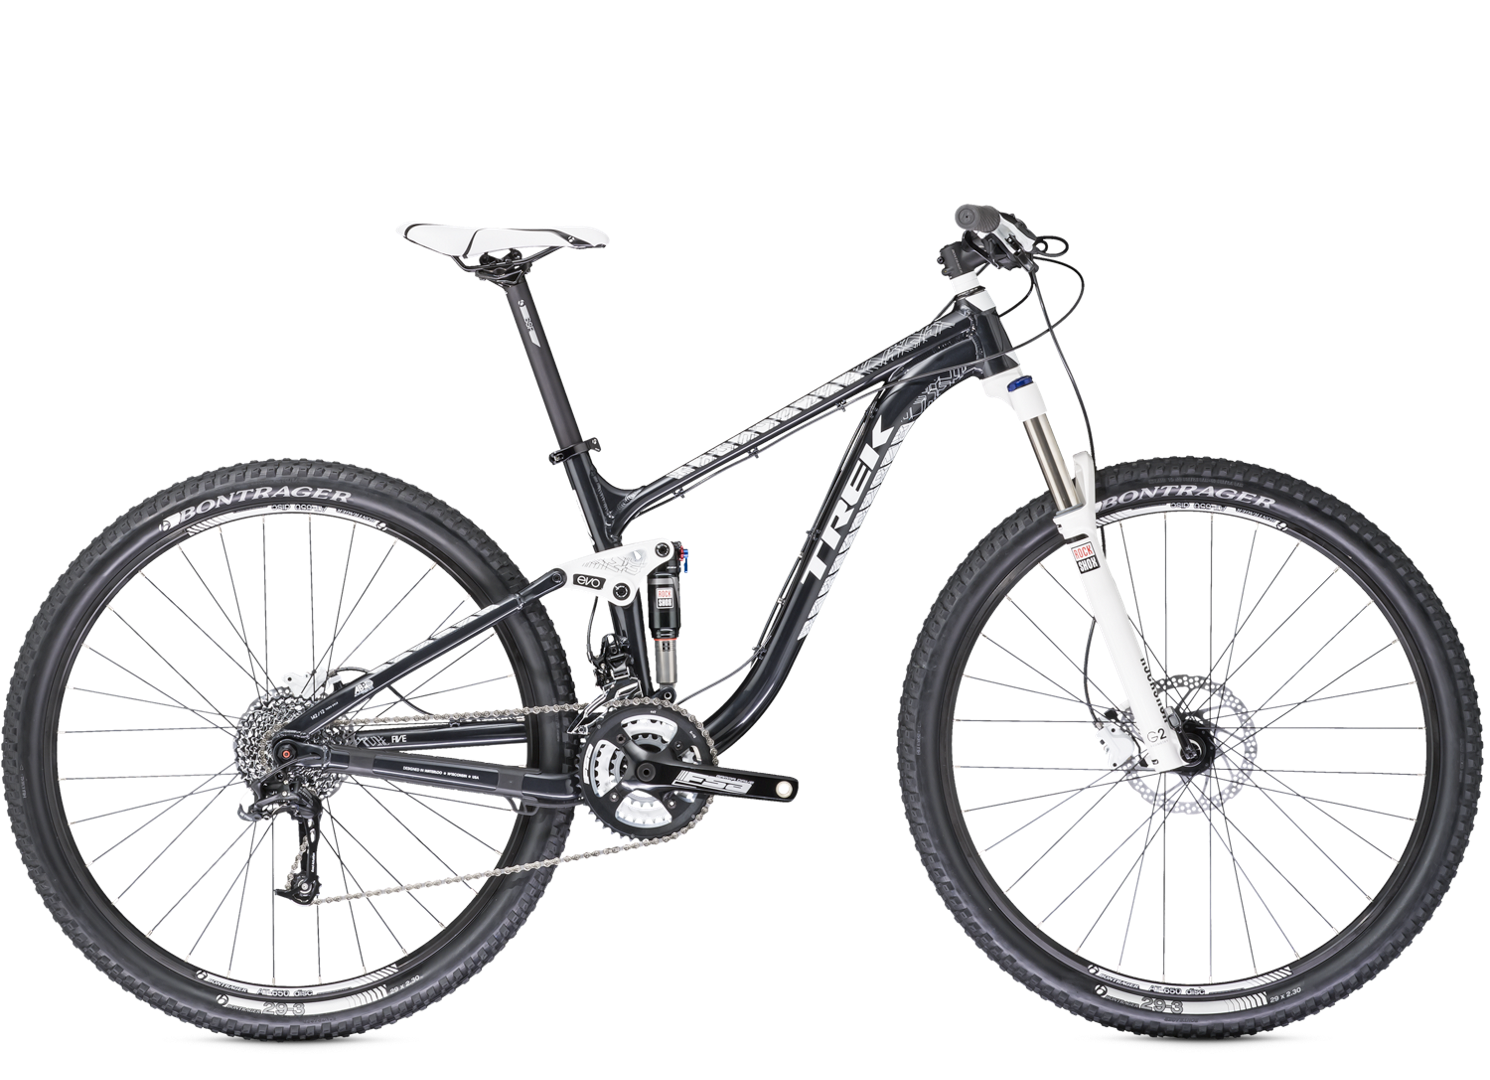 Bumsteads Road and Mountain Bikes: 2014 Trek Fuel EX 5